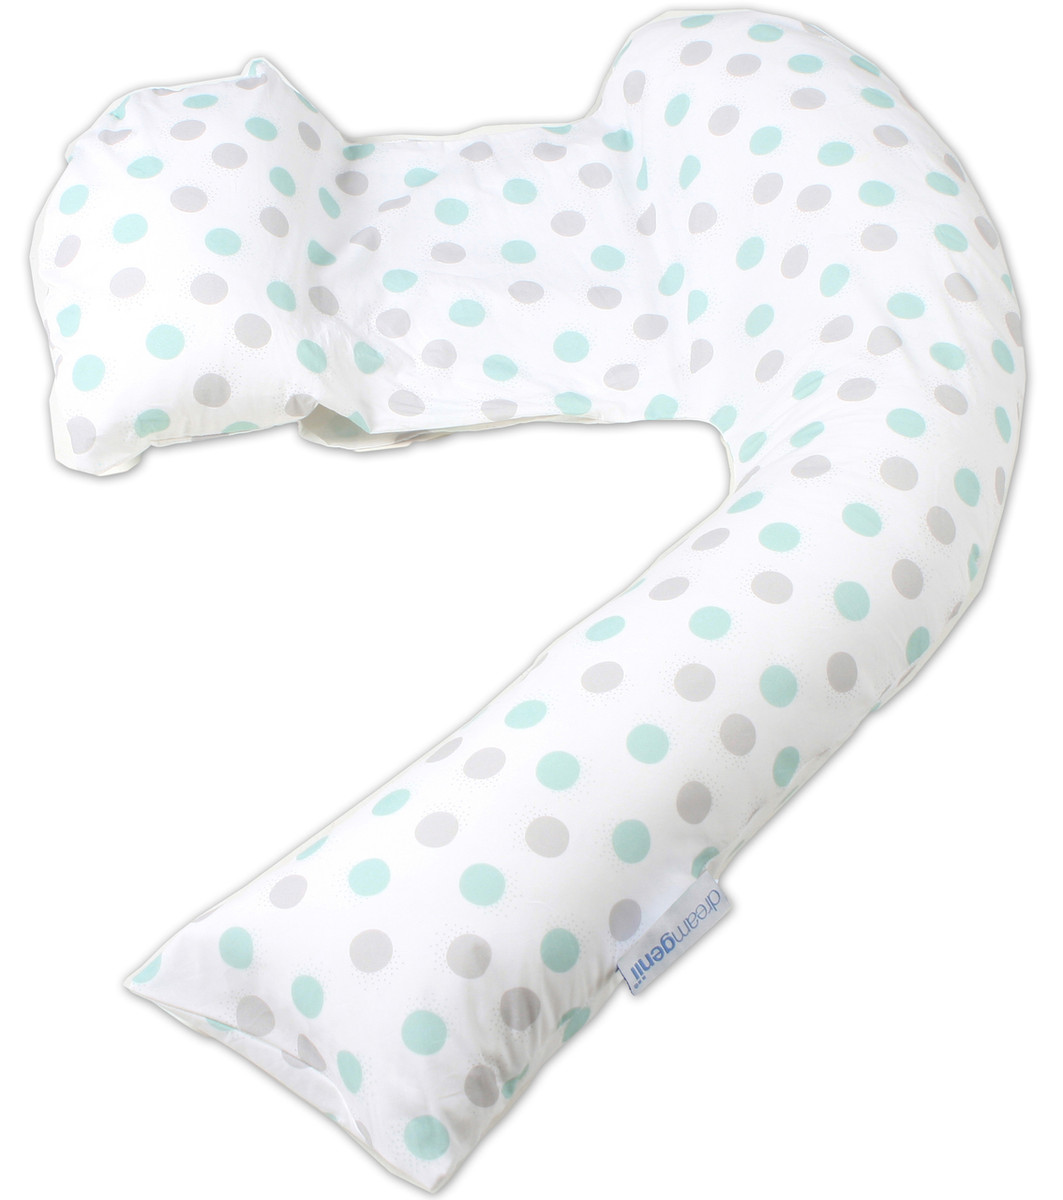 Dreamgenii Pregnancy, Support and Feeding Pillow Geo Grey/Aqua - includes free spare cover!